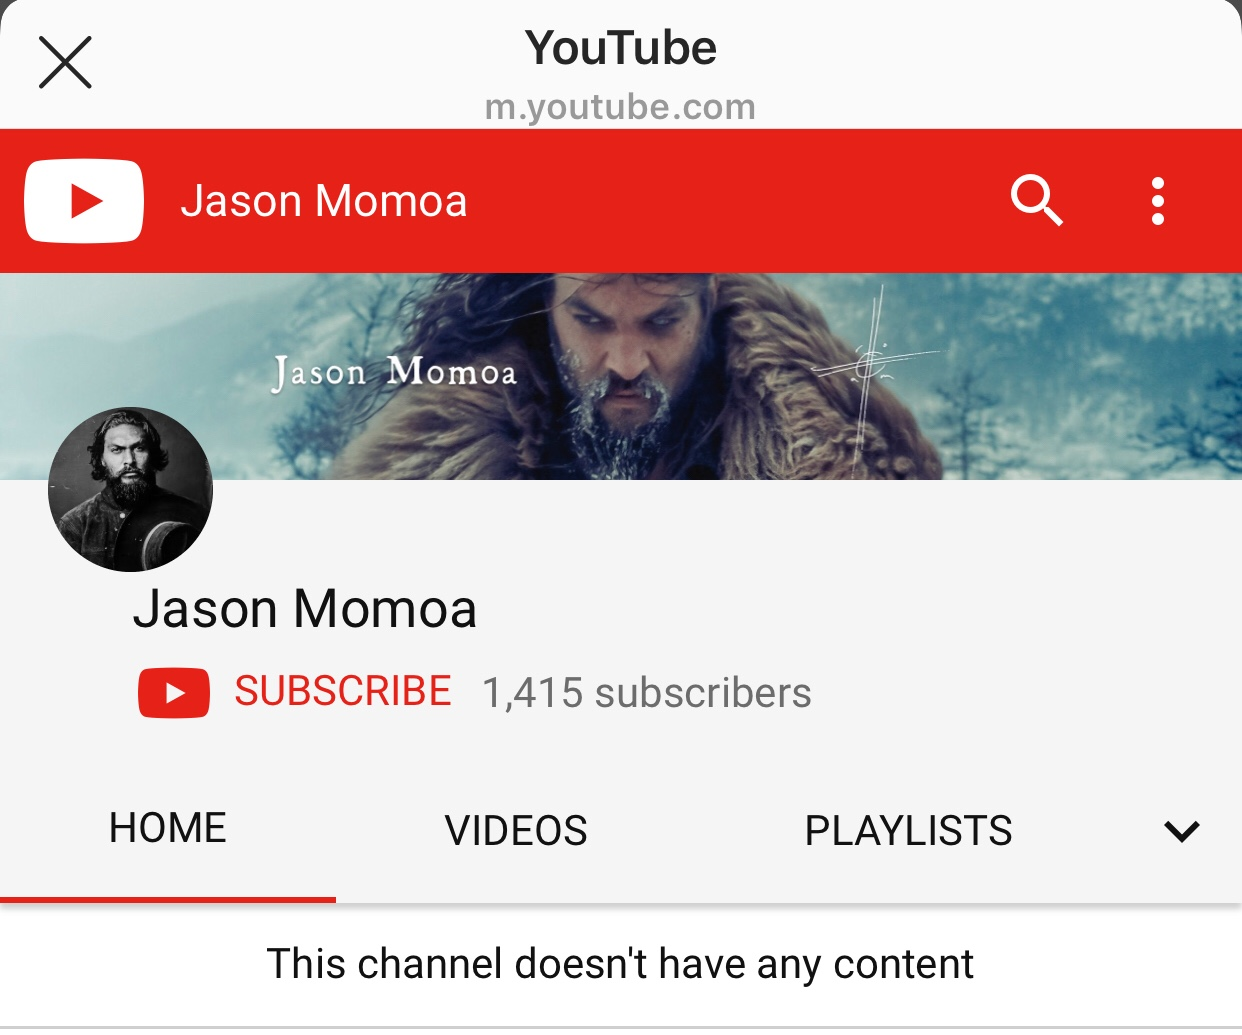 Jason Momoa Official YouTube